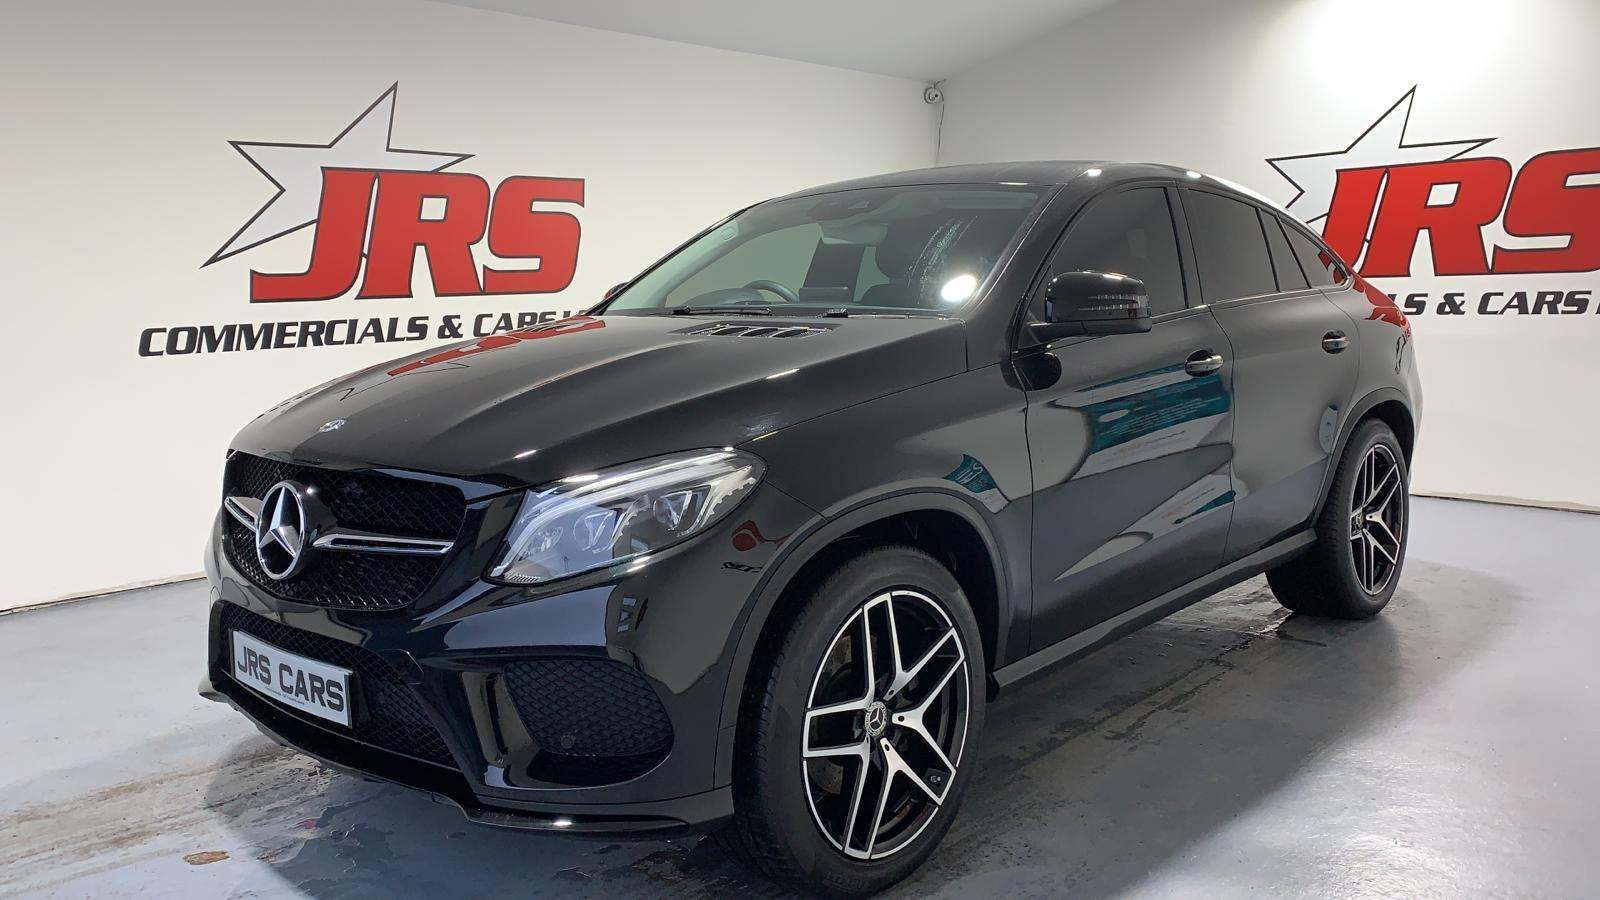 2018 MERCEDES BENZ GLE Class 3.0 GLE350 AMG Line 9G-Tronic 4MATIC (s/s) Diesel Automatic **Reversing Camera** – J R S Commercials And Cars Dungannon full